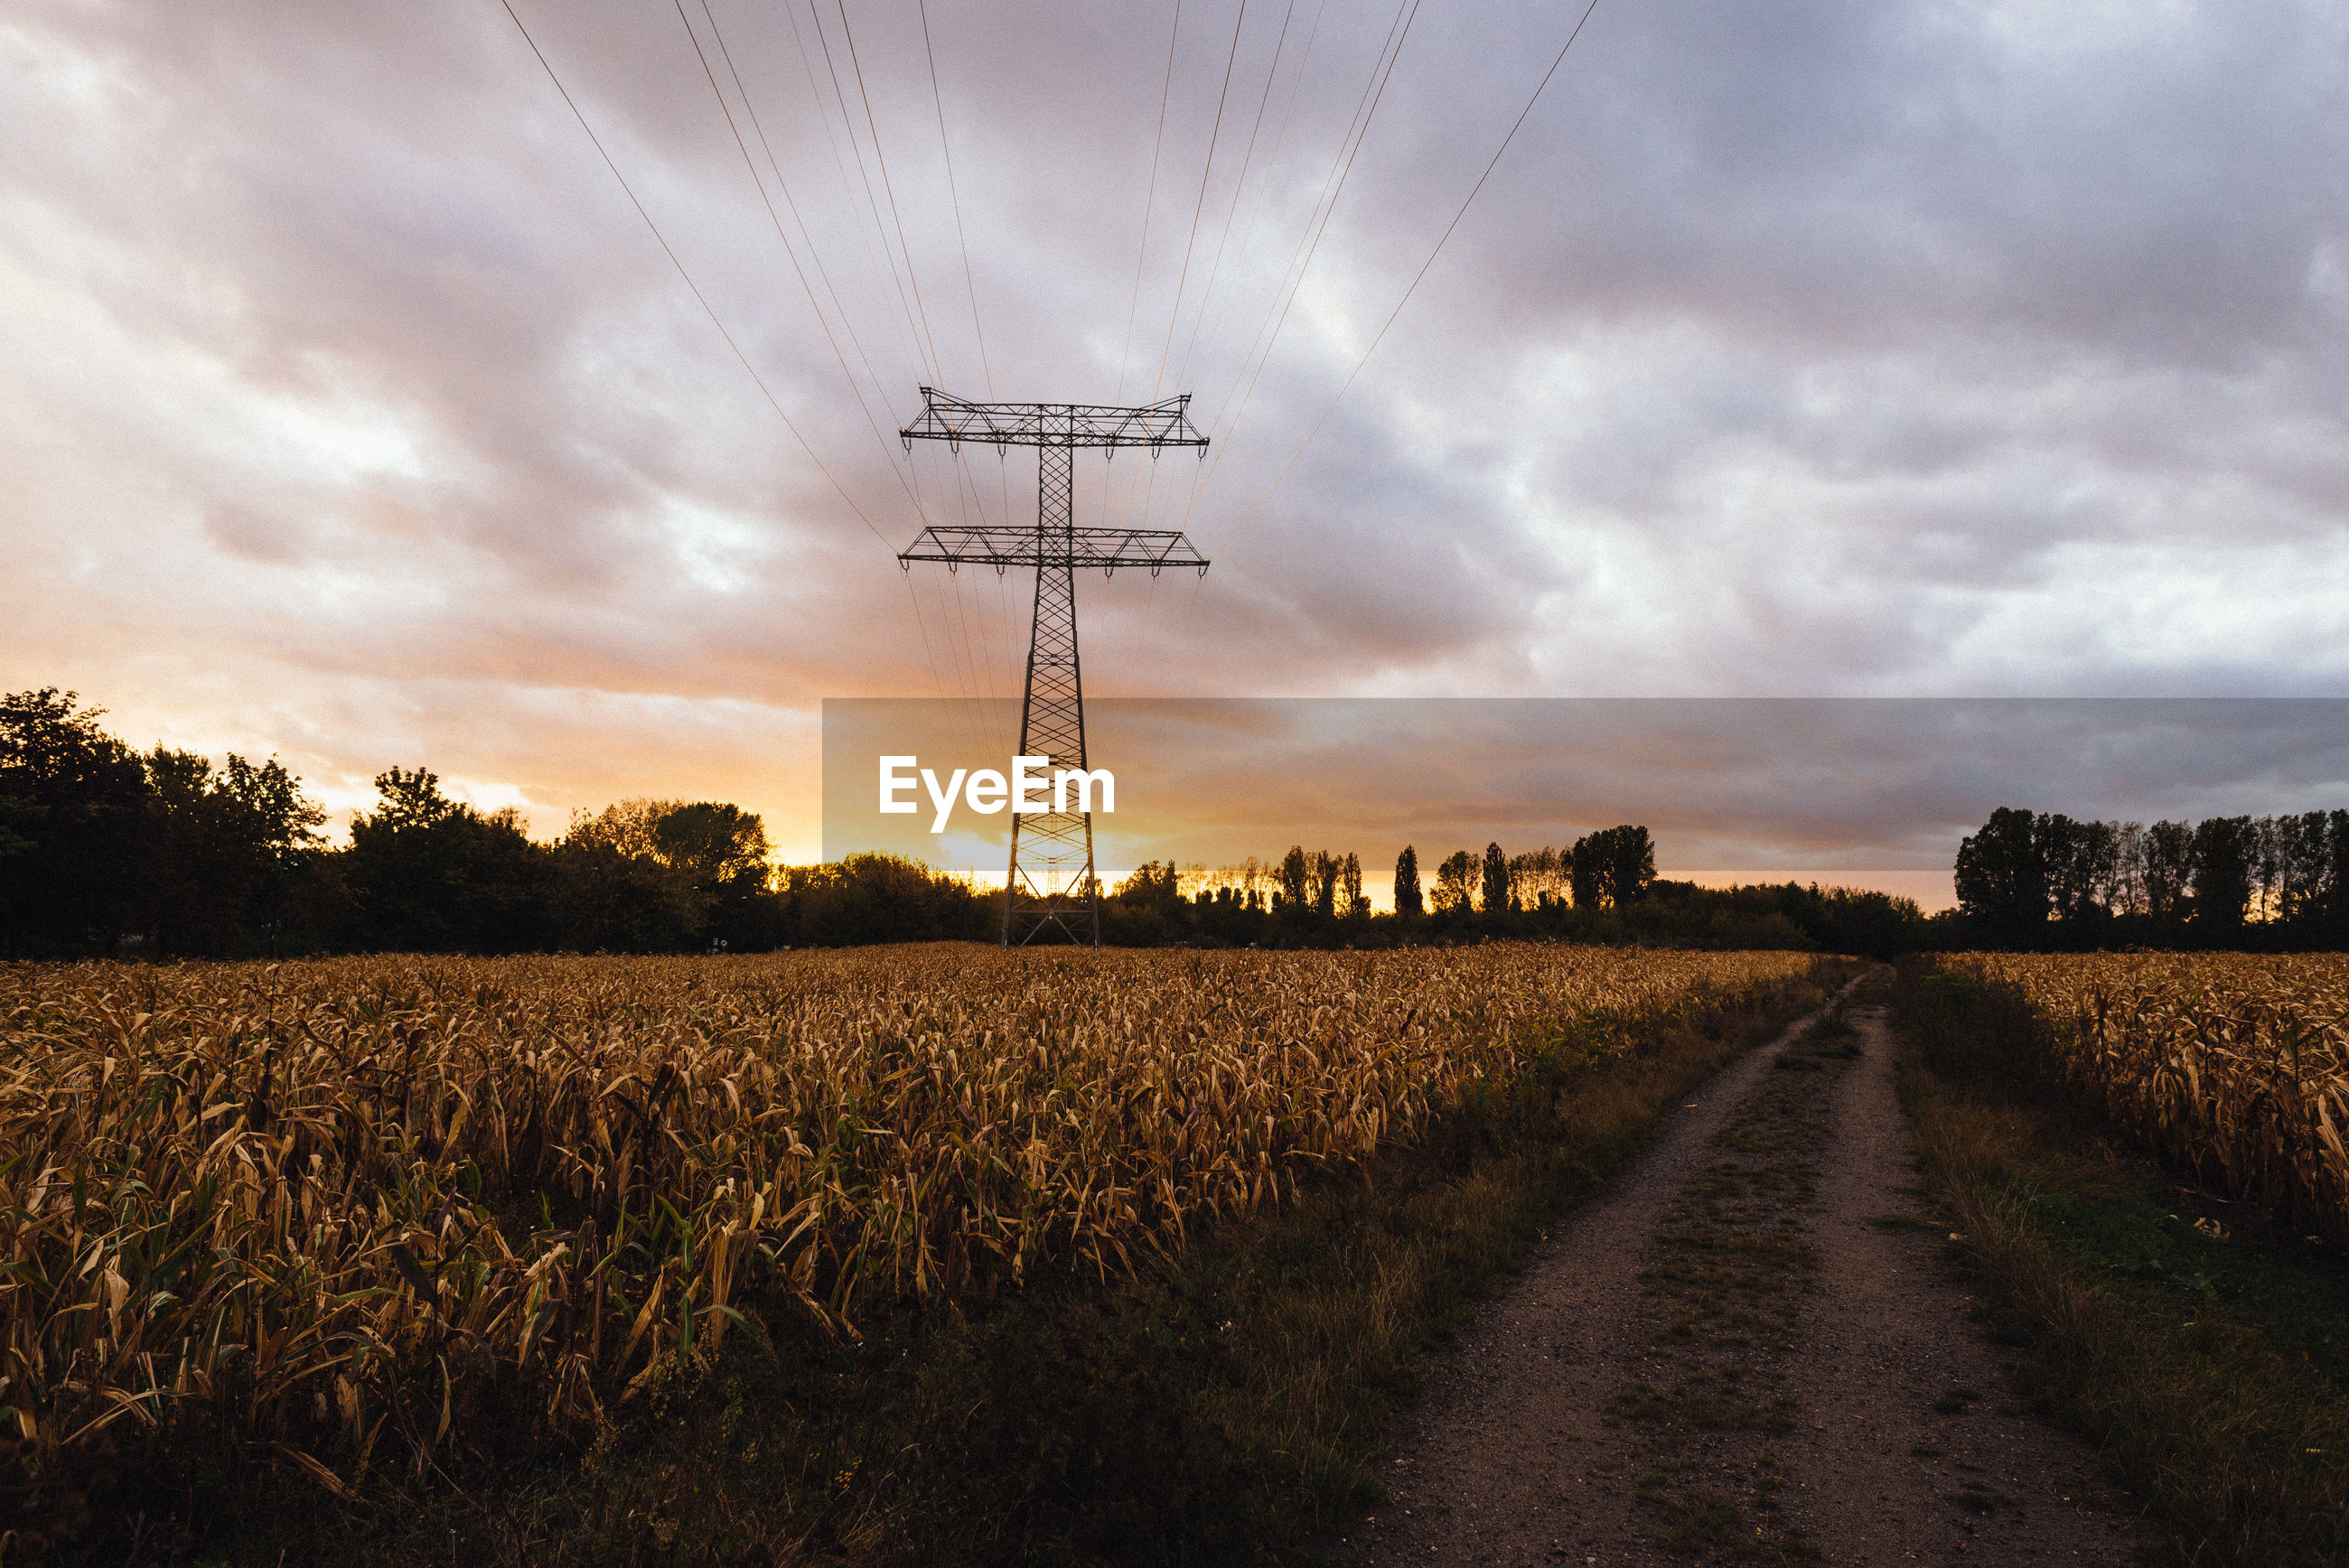 sky, landscape, cloud, electricity, electricity pylon, rural scene, technology, agriculture, environment, field, cable, horizon, land, power generation, power supply, nature, sunset, crop, power line, plant, cereal plant, no people, transportation, scenics - nature, road, evening, dramatic sky, dusk, farm, beauty in nature, tree, tranquility, outdoors, rural area, sunlight, overhead power line, growth, diminishing perspective, tranquil scene, cloudscape, corn, vanishing point, non-urban scene, dirt road, the way forward, storm, in a row